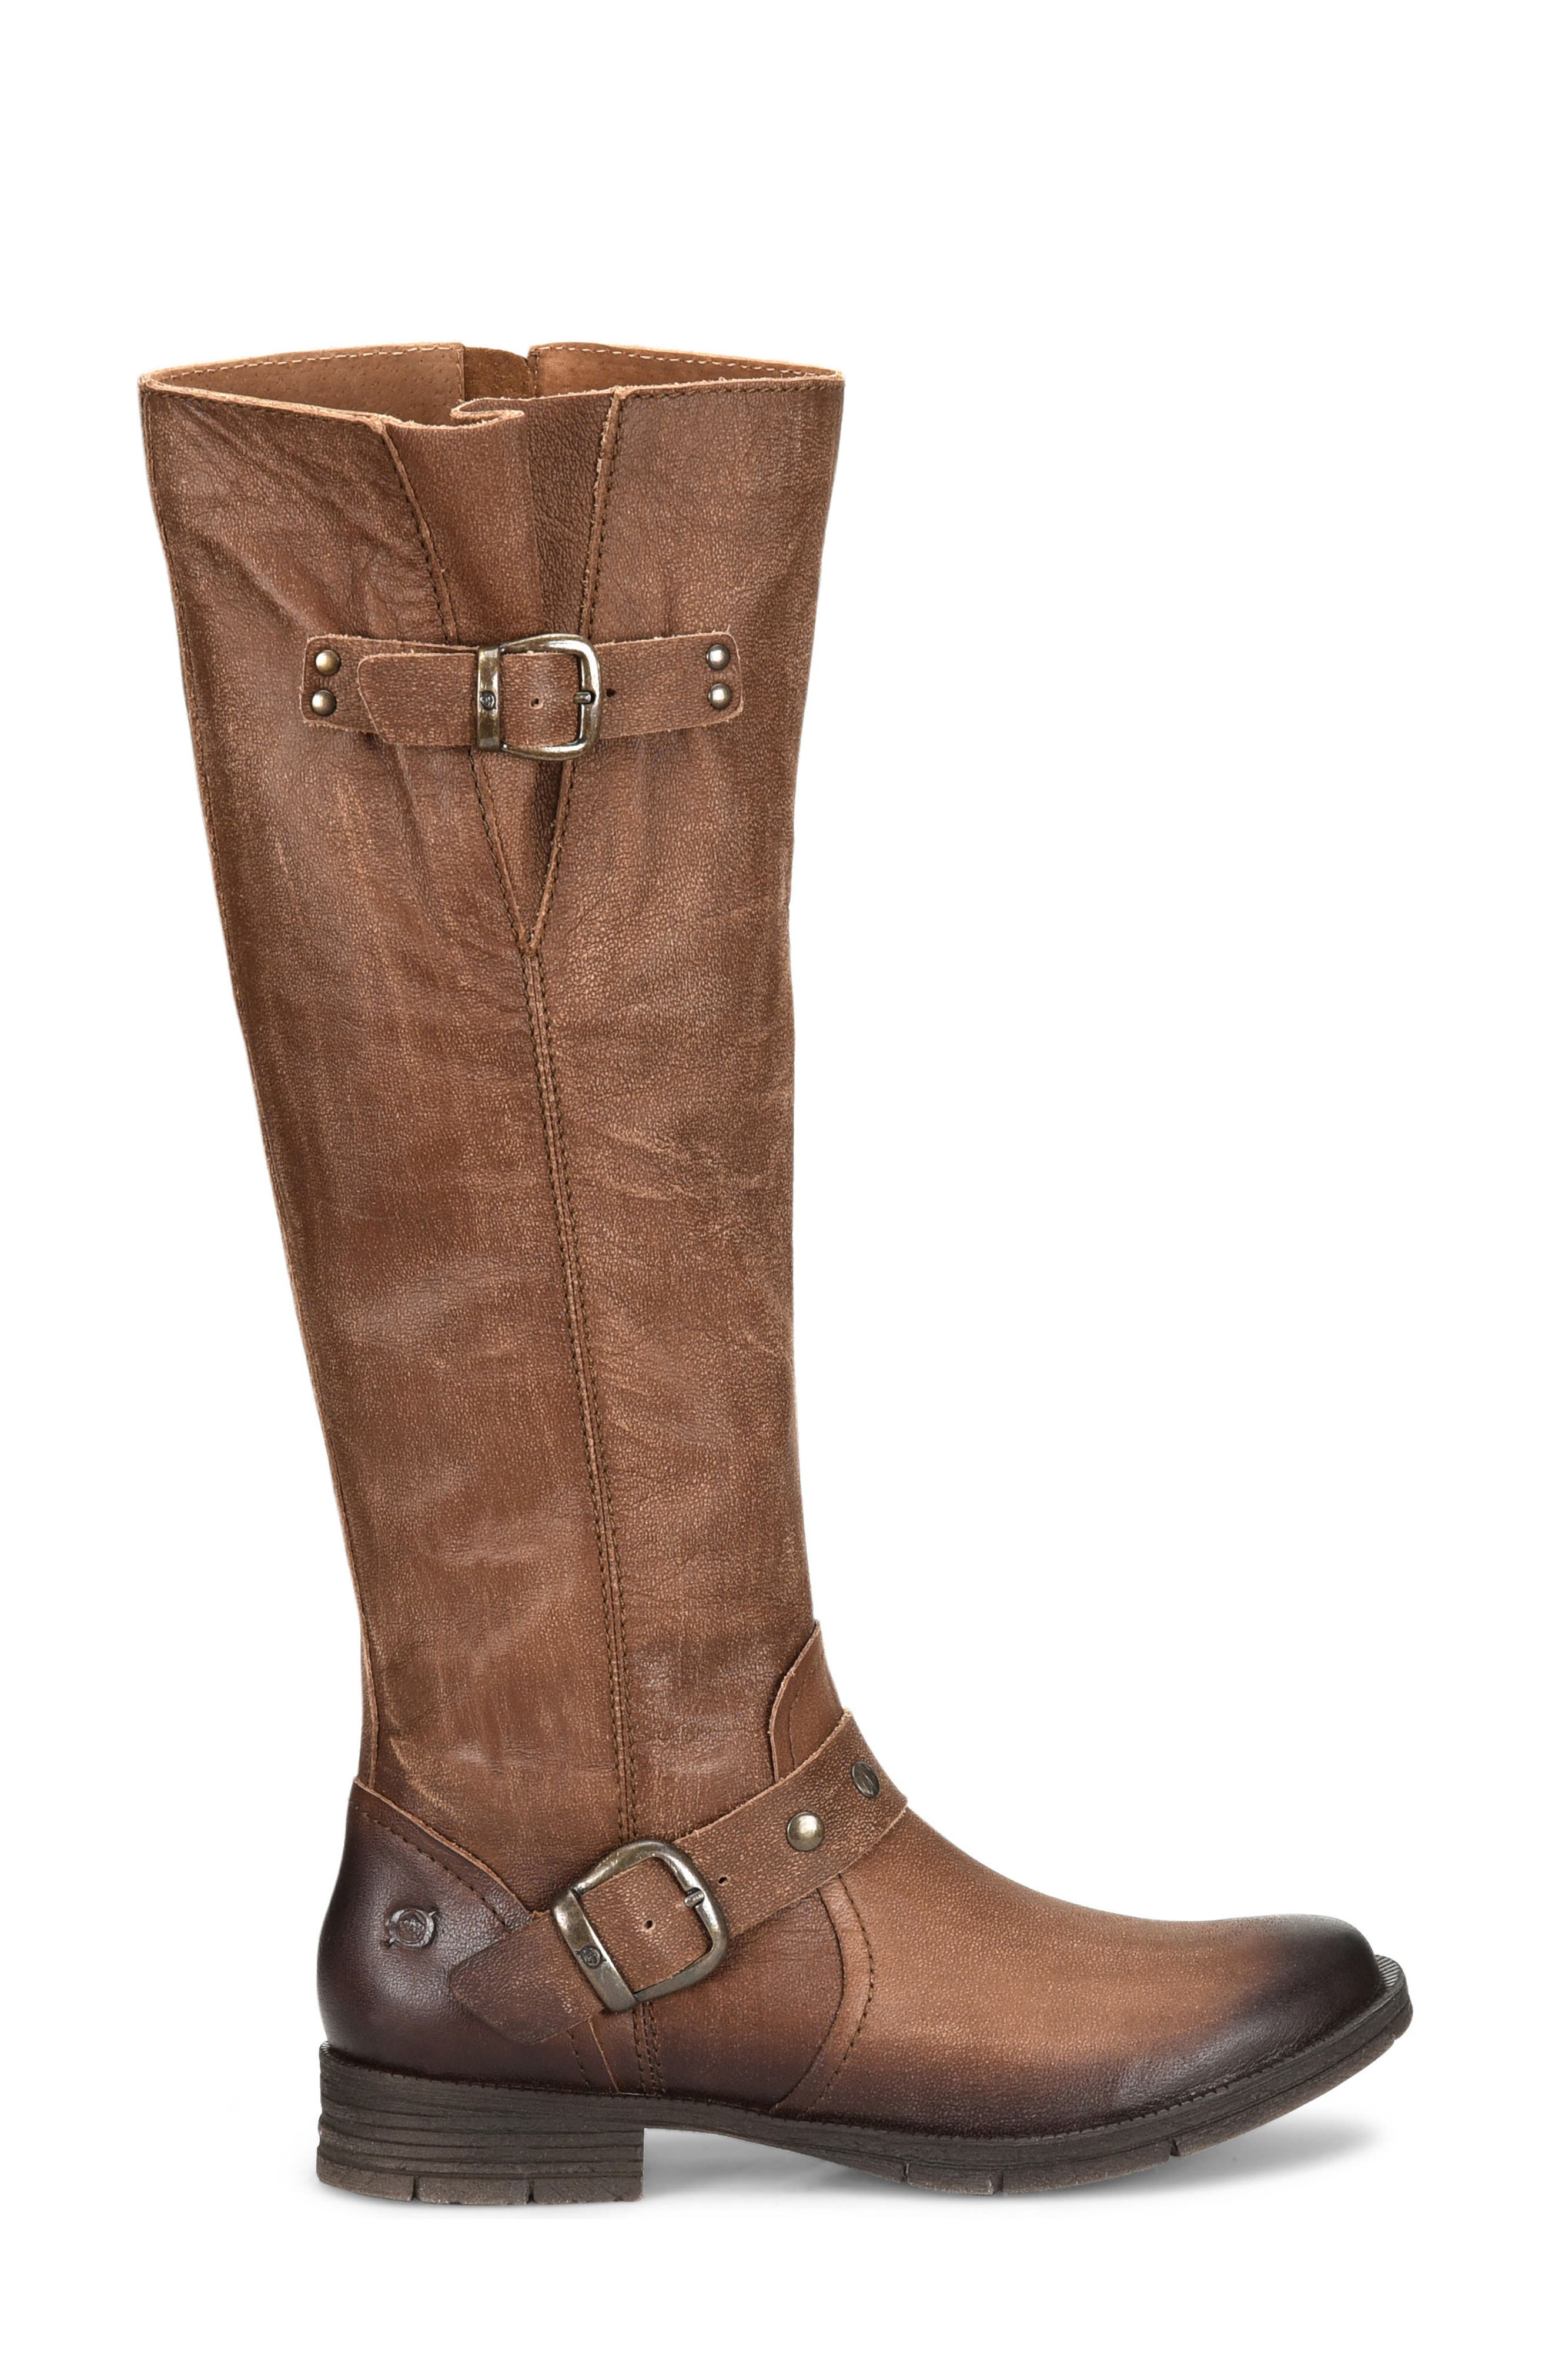 Ashland Knee High Boot,                             Alternate thumbnail 3, color,                             Brown Leather